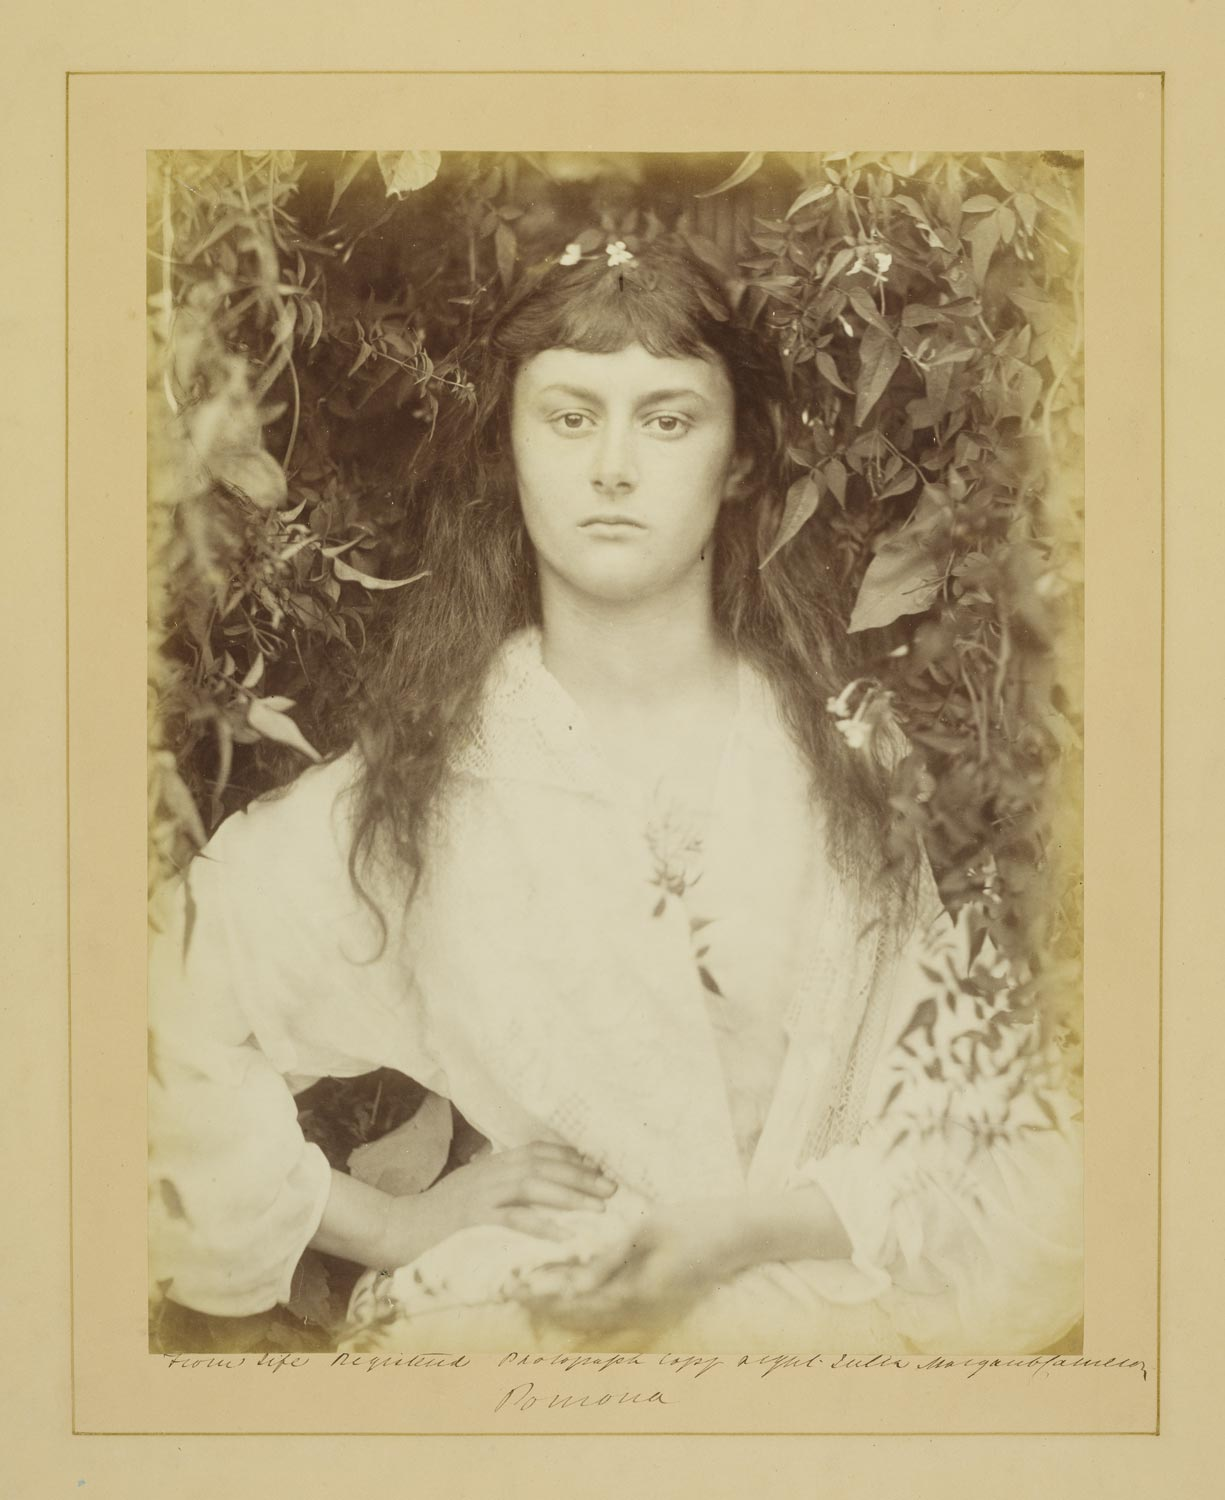 sepia toned image of young woman in white dress surrounded by foliage